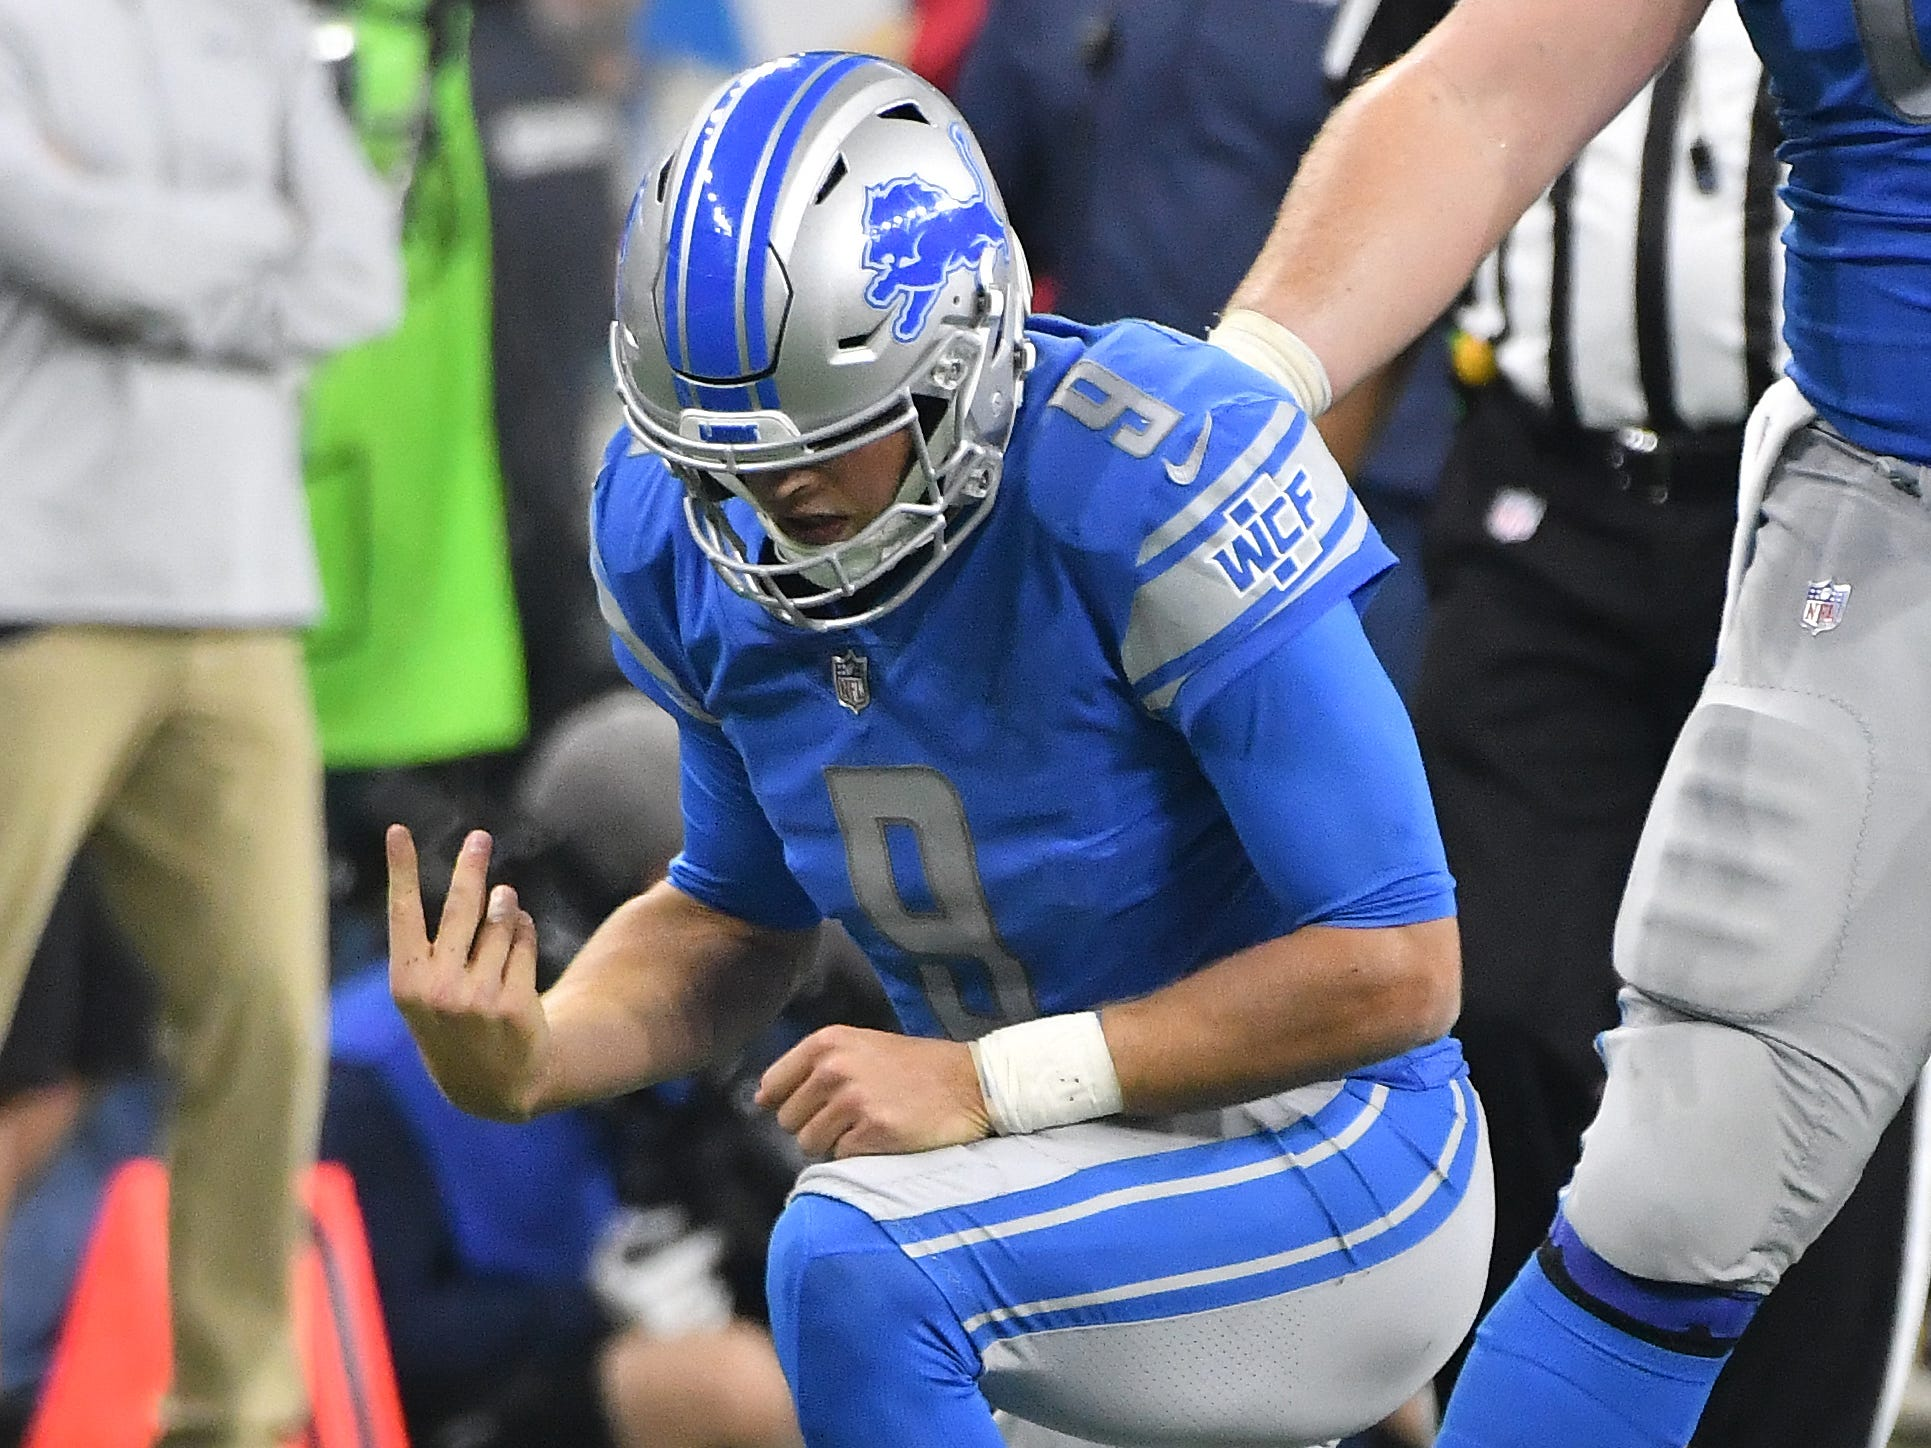 Lions quarterback Matthew Stafford shakes out his throwing hand after being taken down, with Seattle picking up a roughing the passer penalty, in the fourth quarter.